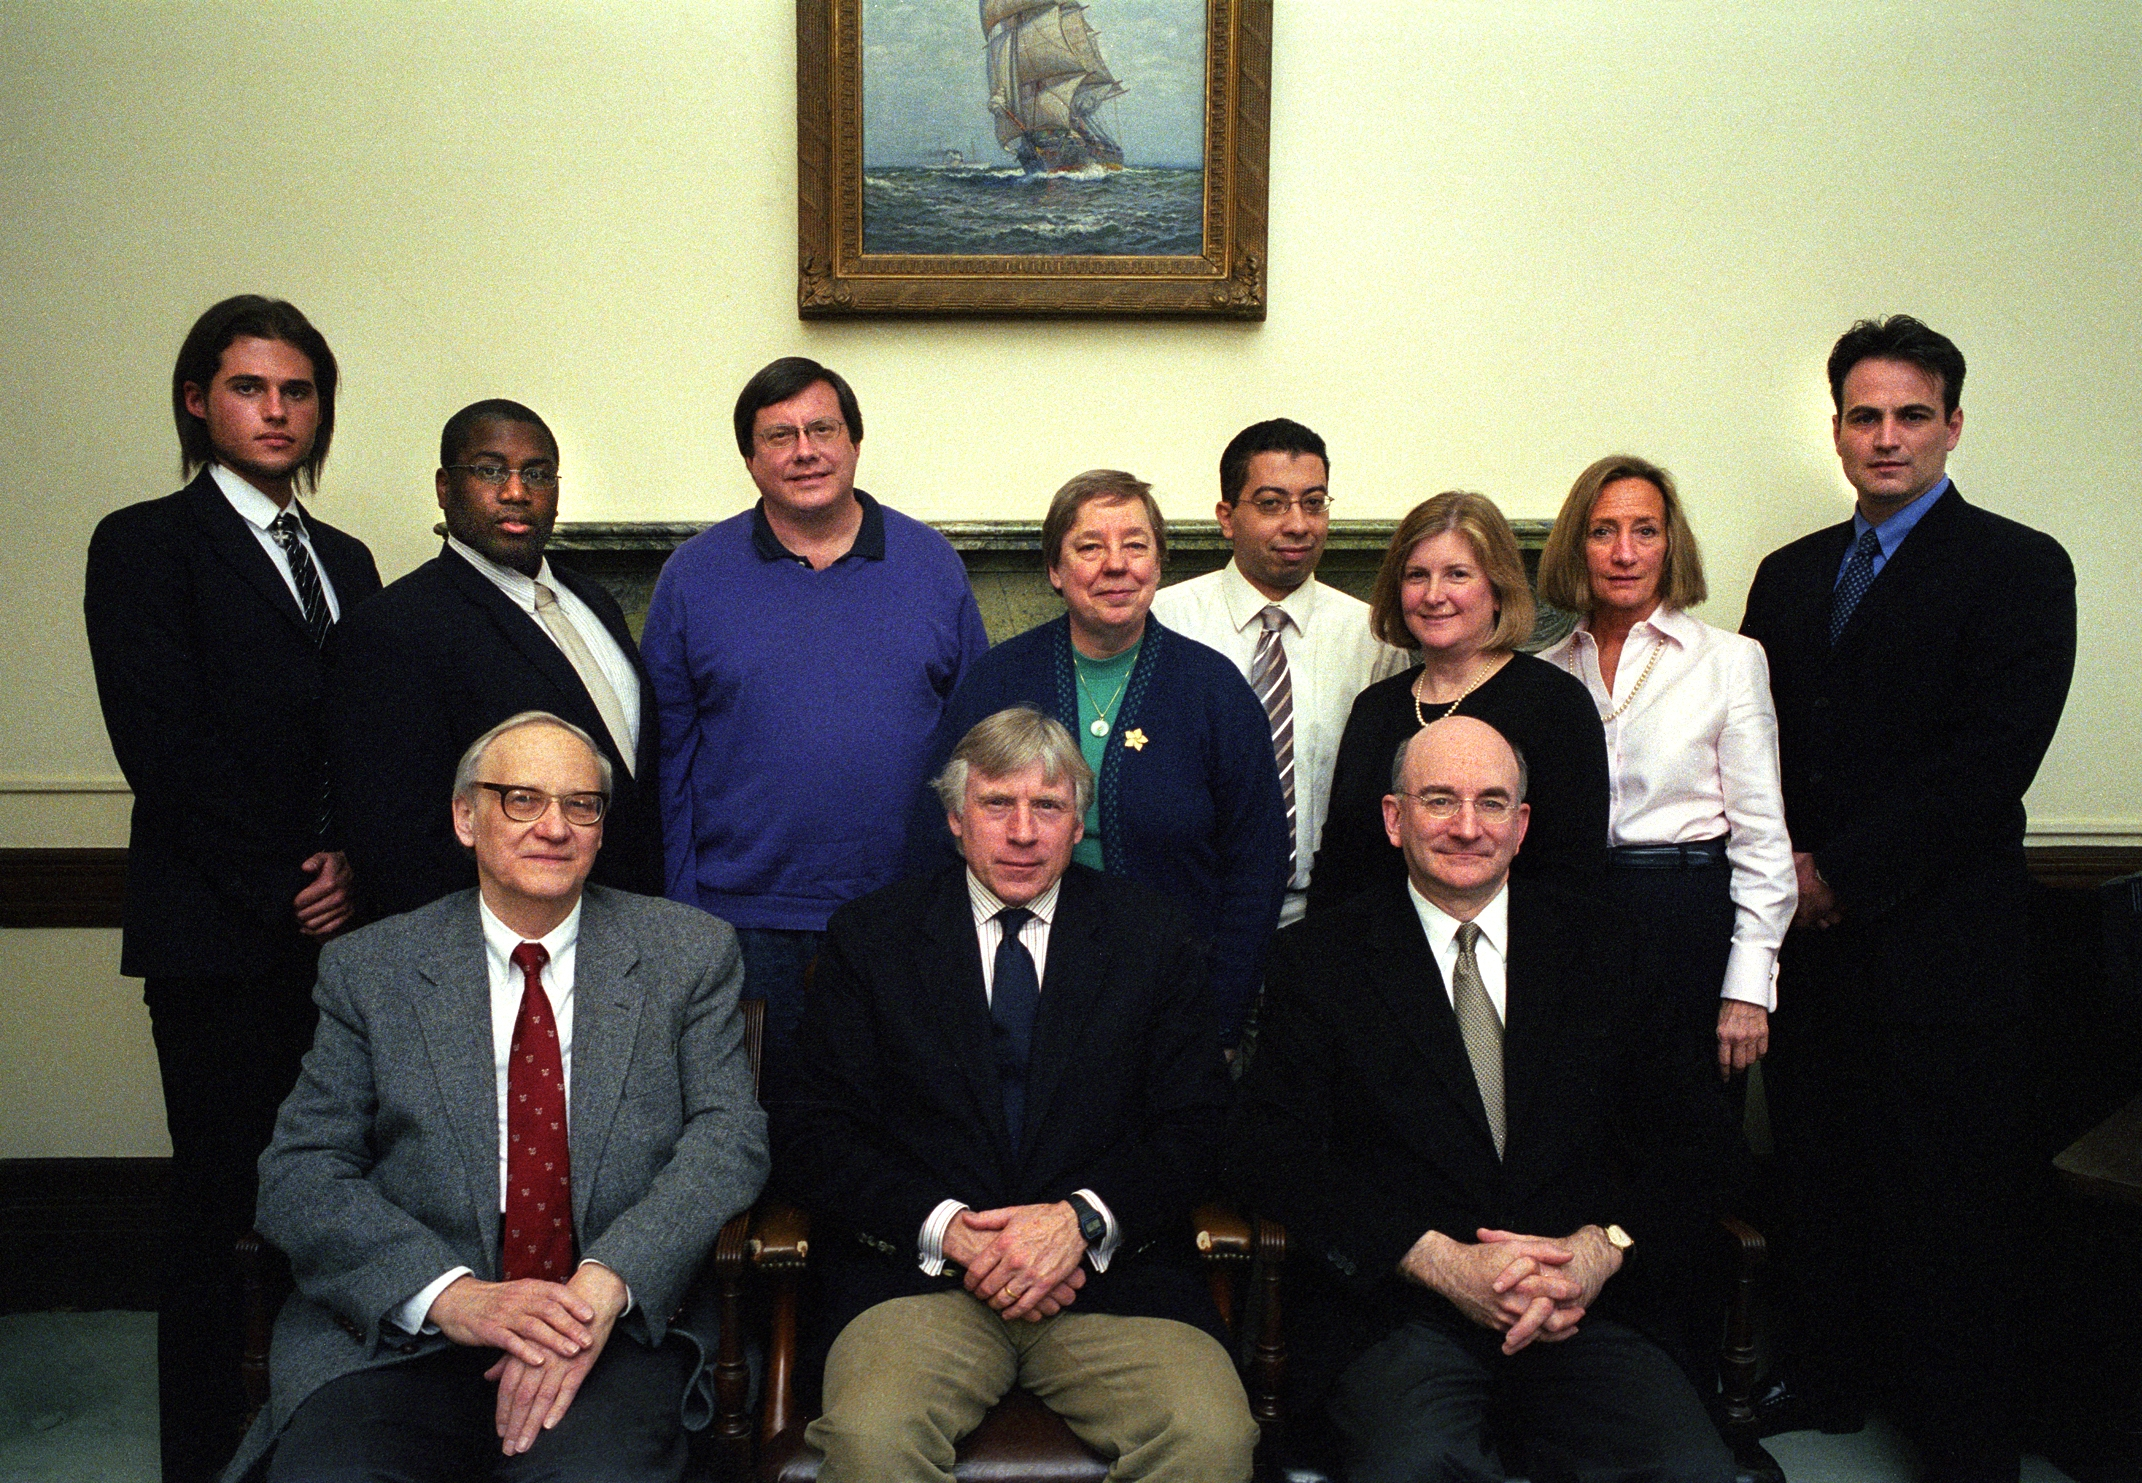 exec jpg laureen zubiaurre nontenured college of dental medicine richard bulliet tenured a s ss sharyn o halloran tenured sipa seated left to right